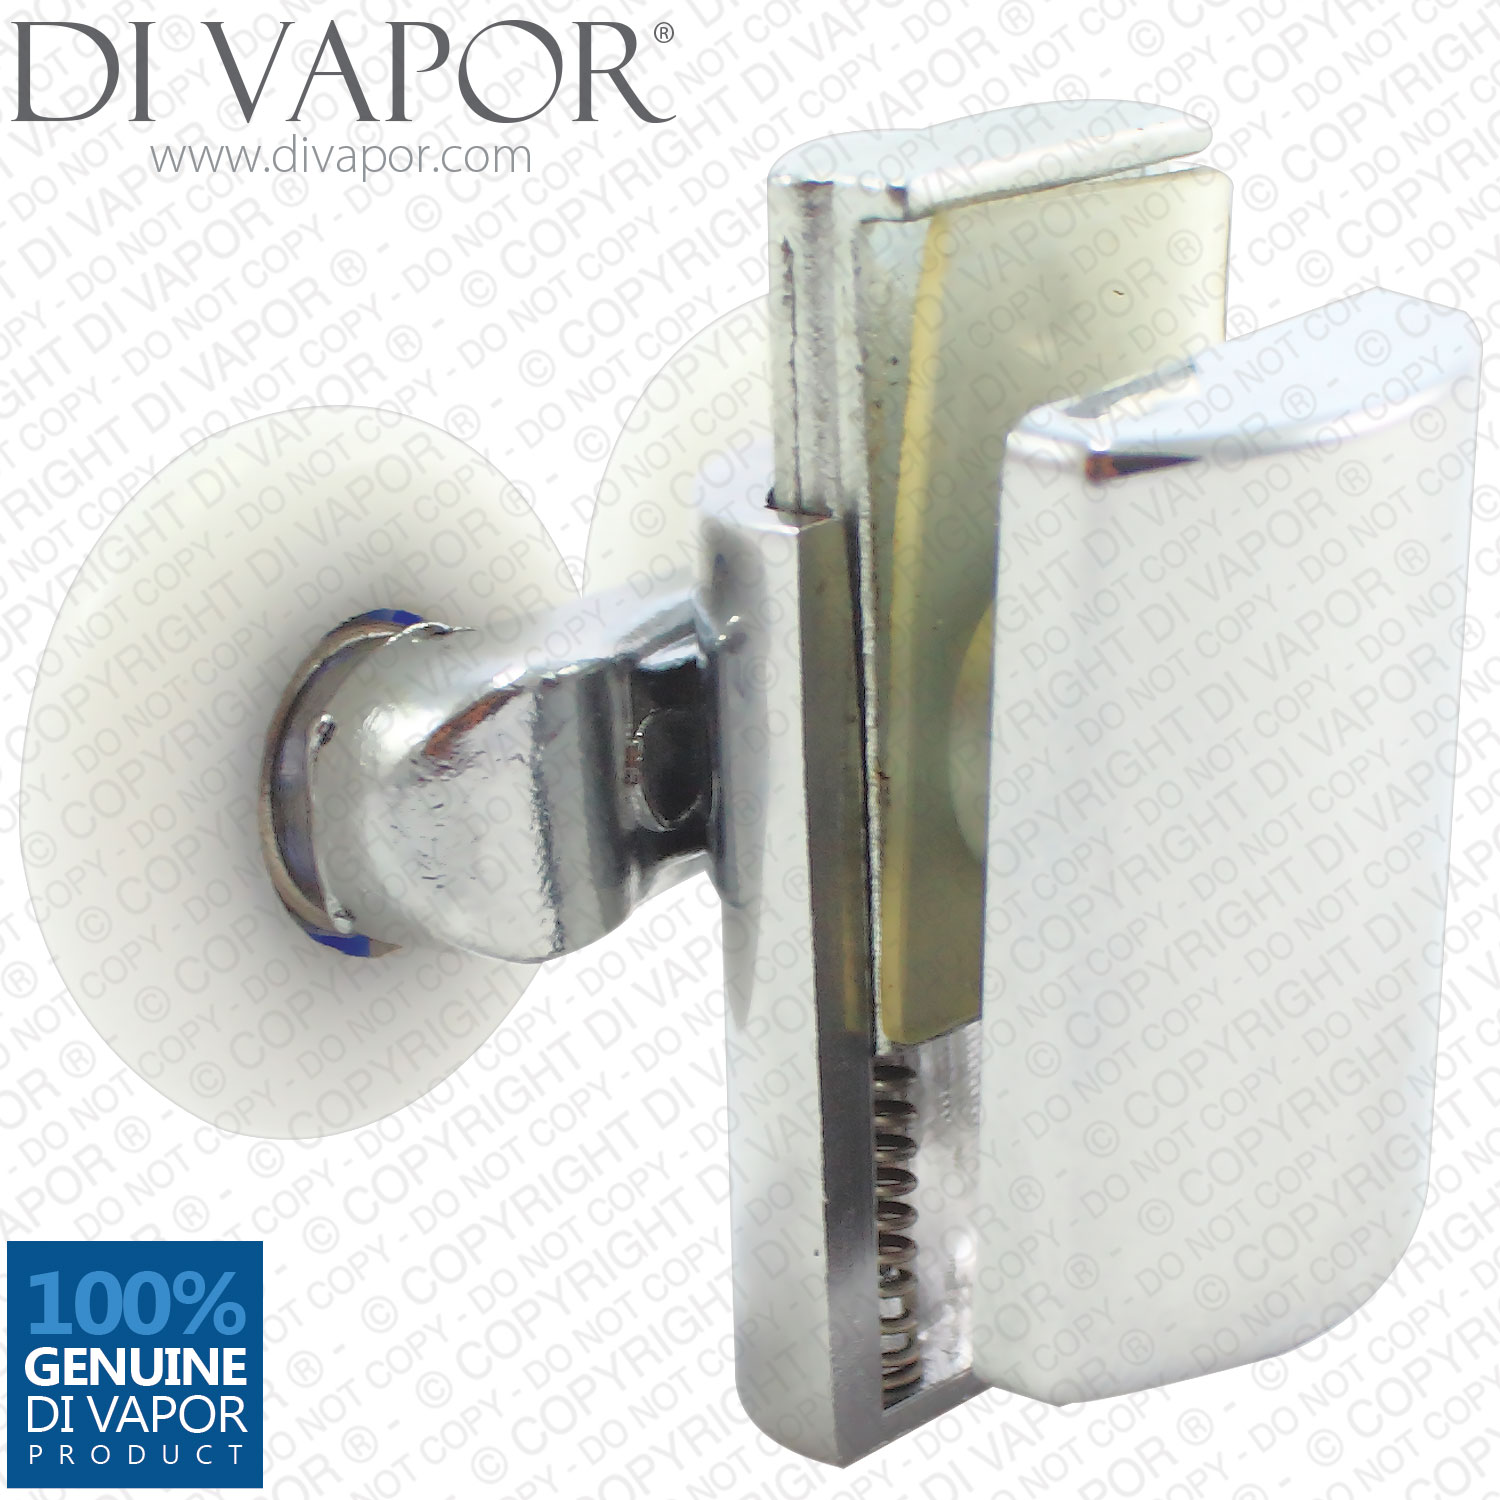 Di Vapor R Bottom Double Wheel Metal Shower Door Runner